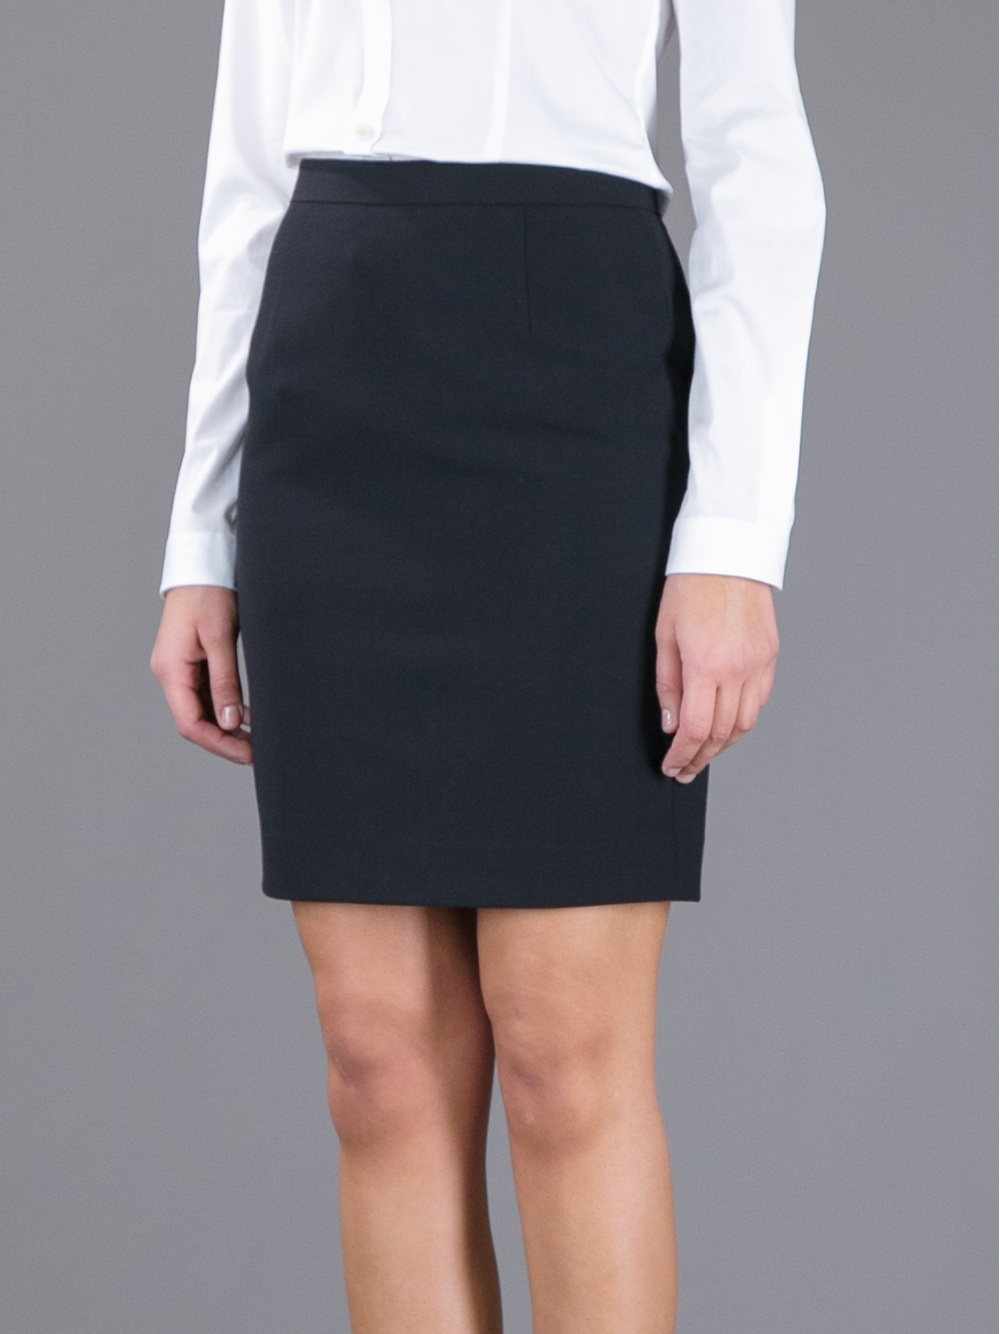 Dsquared² Short Pencil Skirt in Black | Lyst